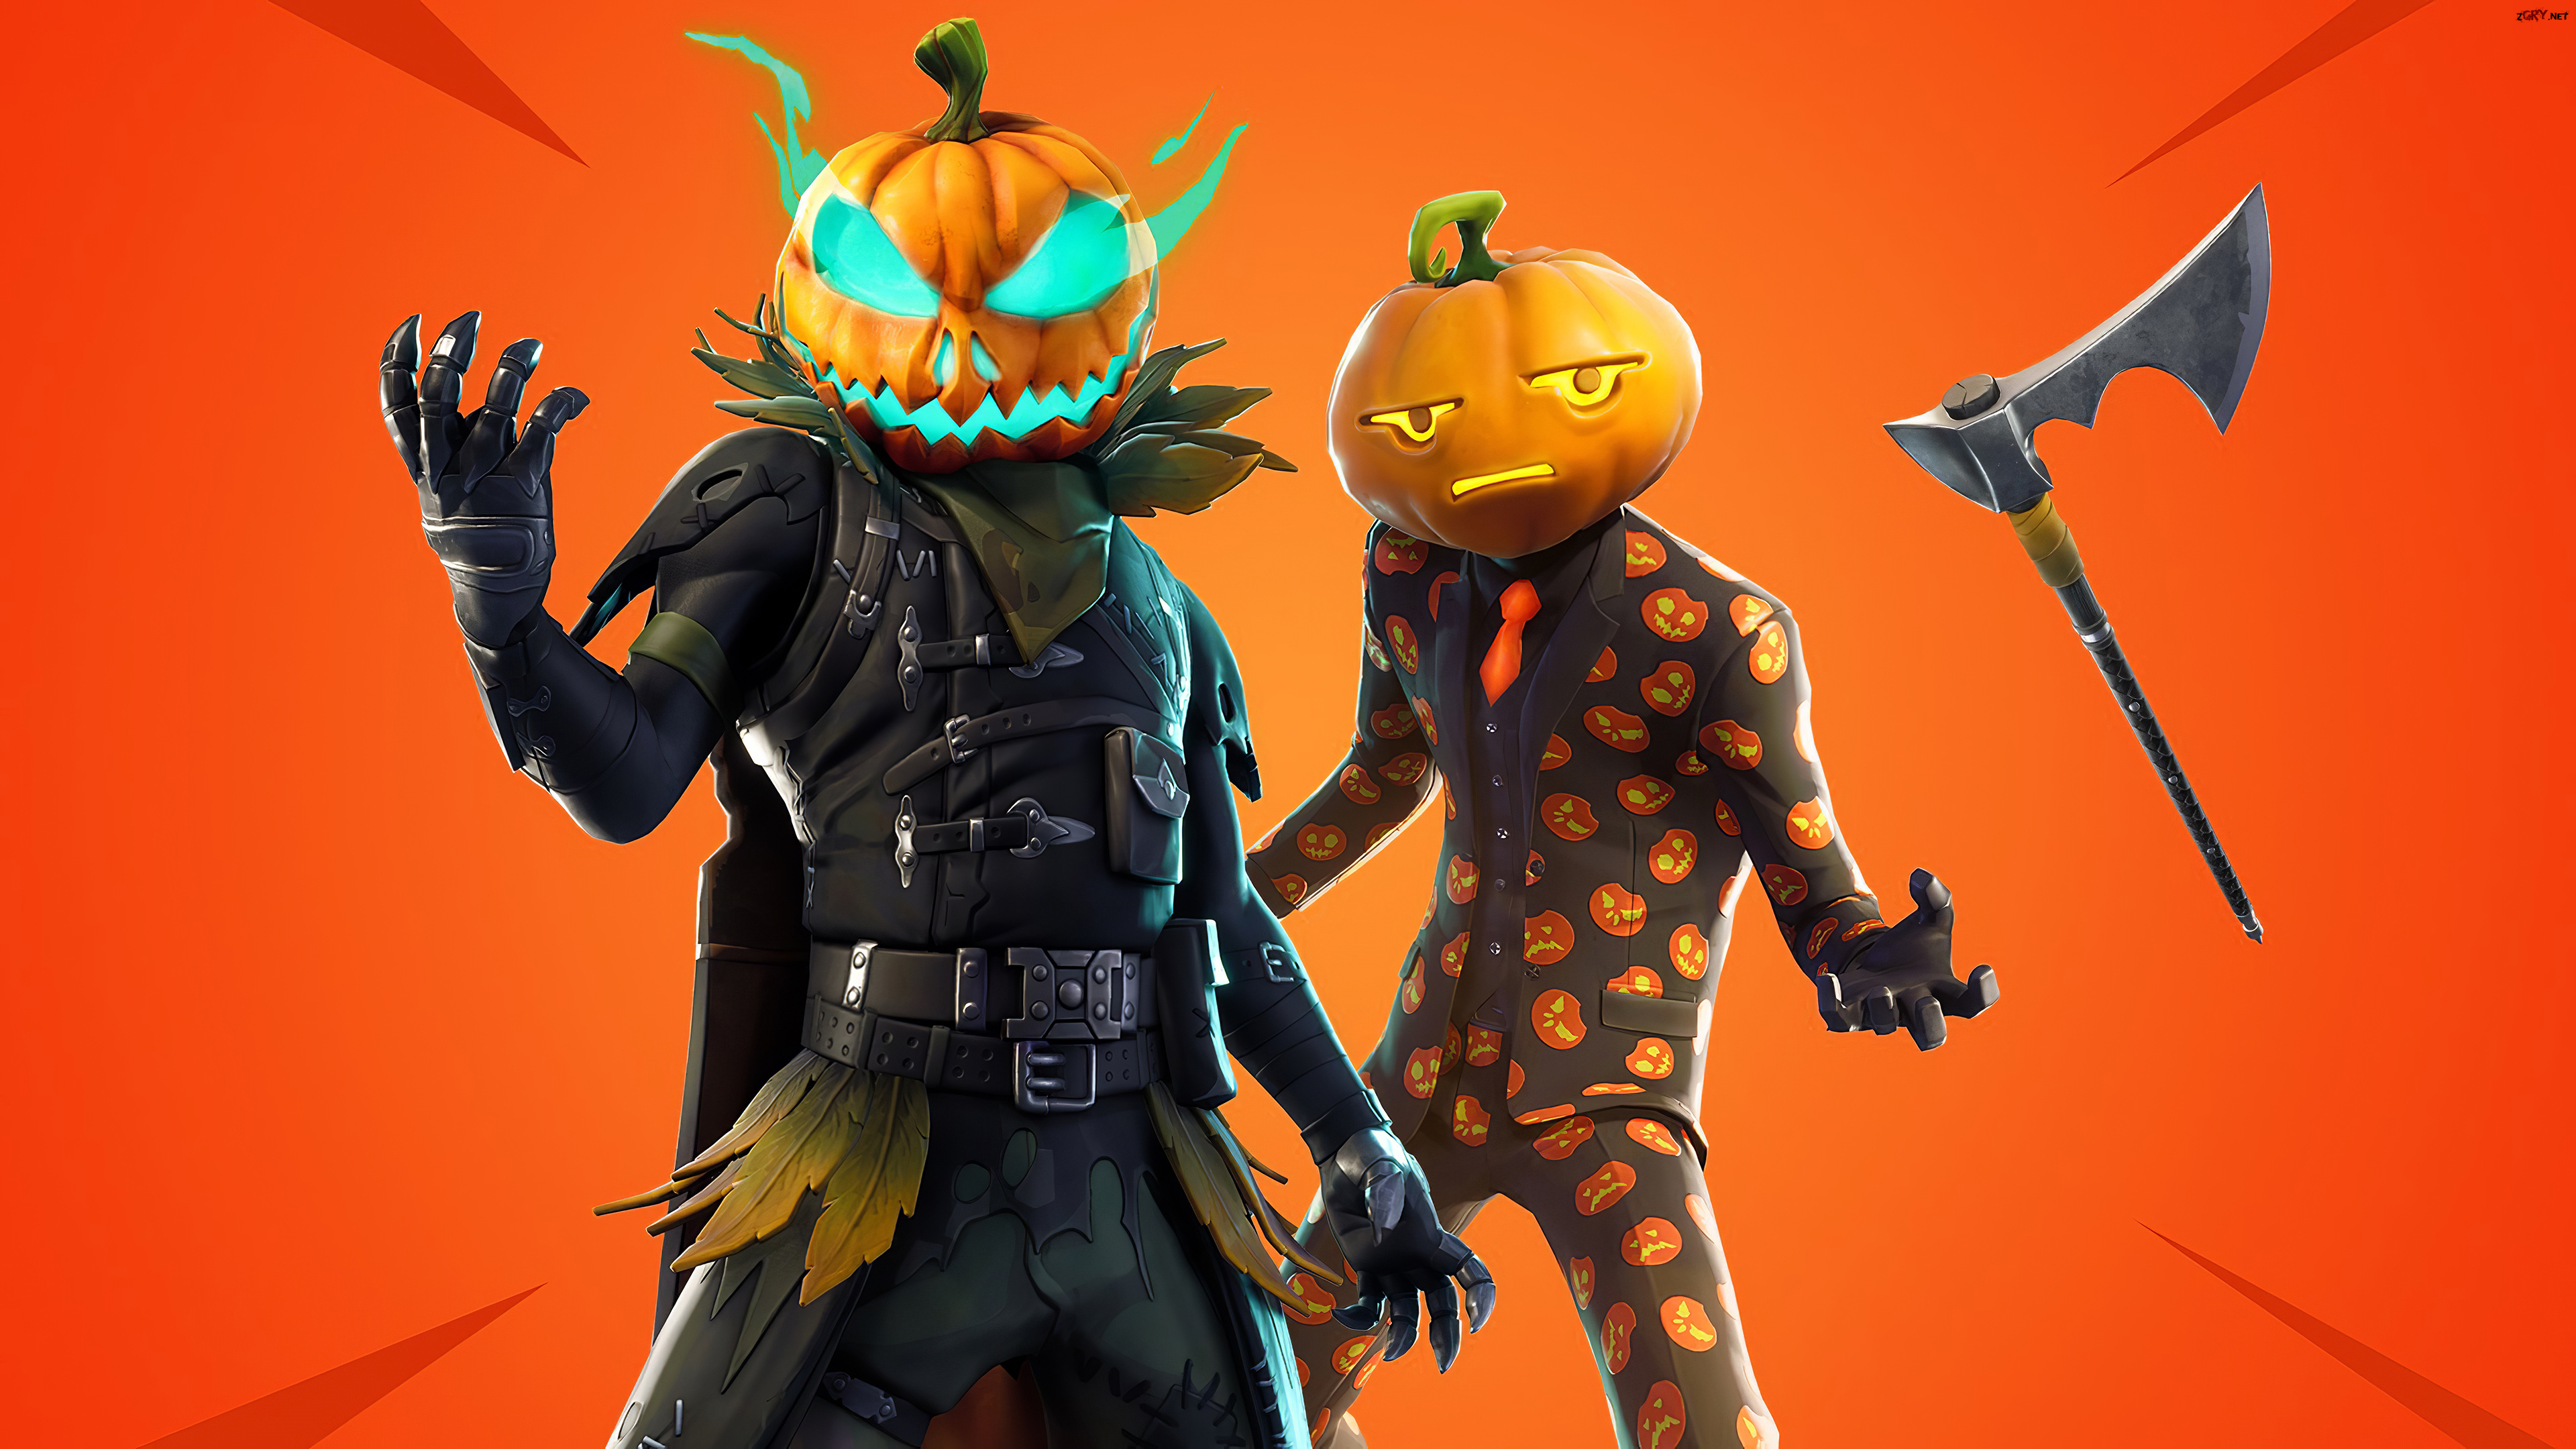 Gra, Fortnite, Halloween, Postacie